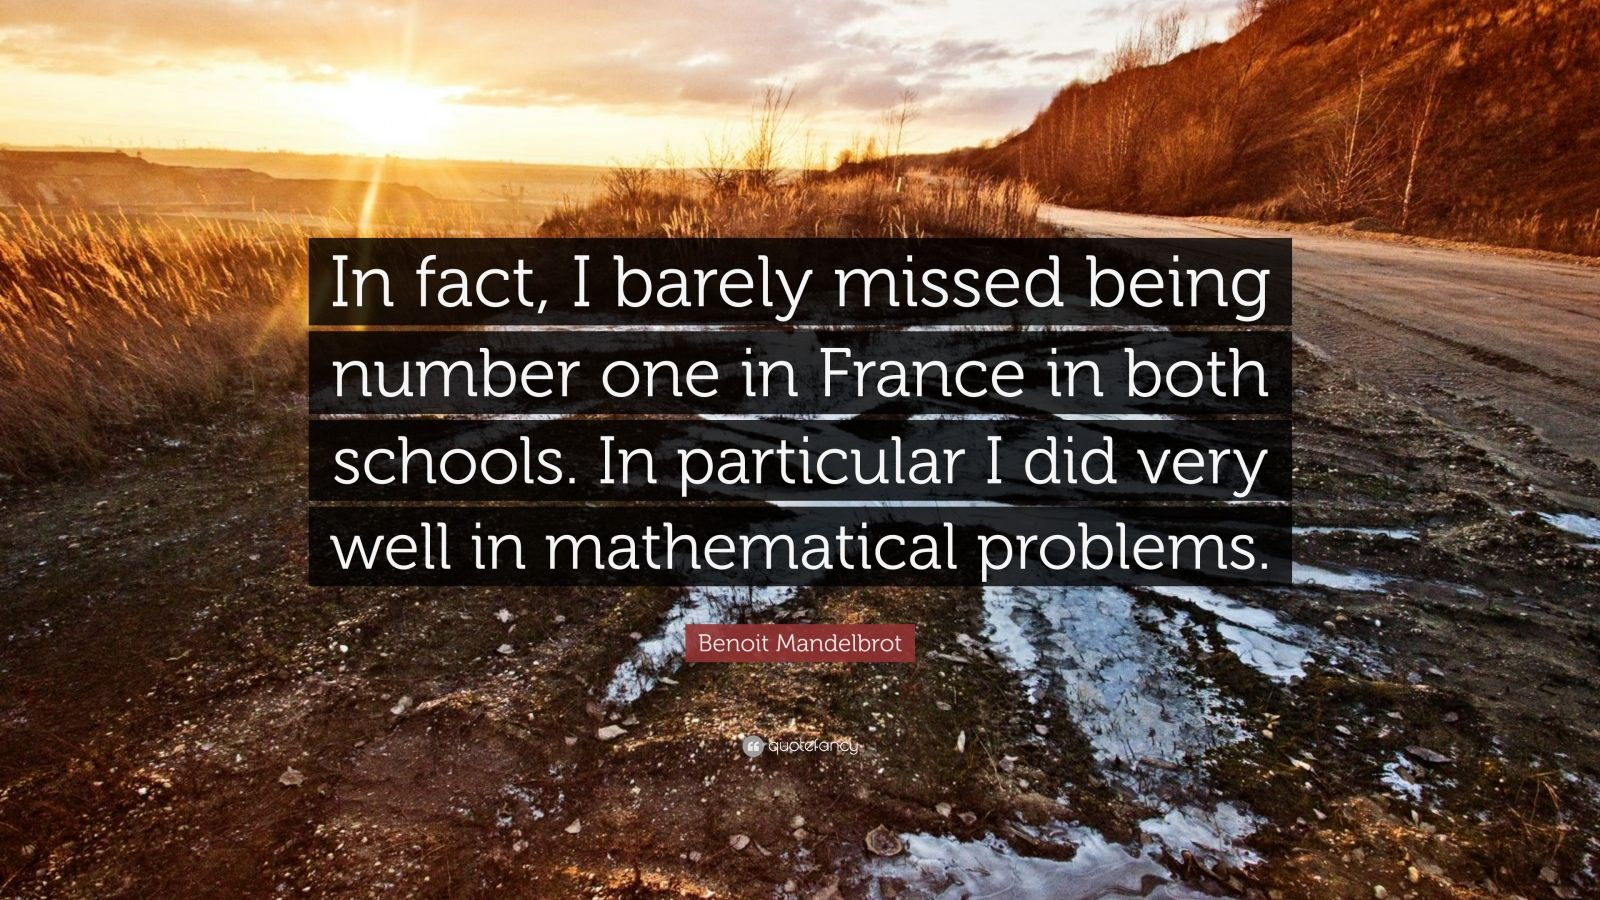 """Benoit Mandelbrot Quote: """"In fact, I barely missed being number one in France in both schools. In particular I did very well in mathematical problems."""""""